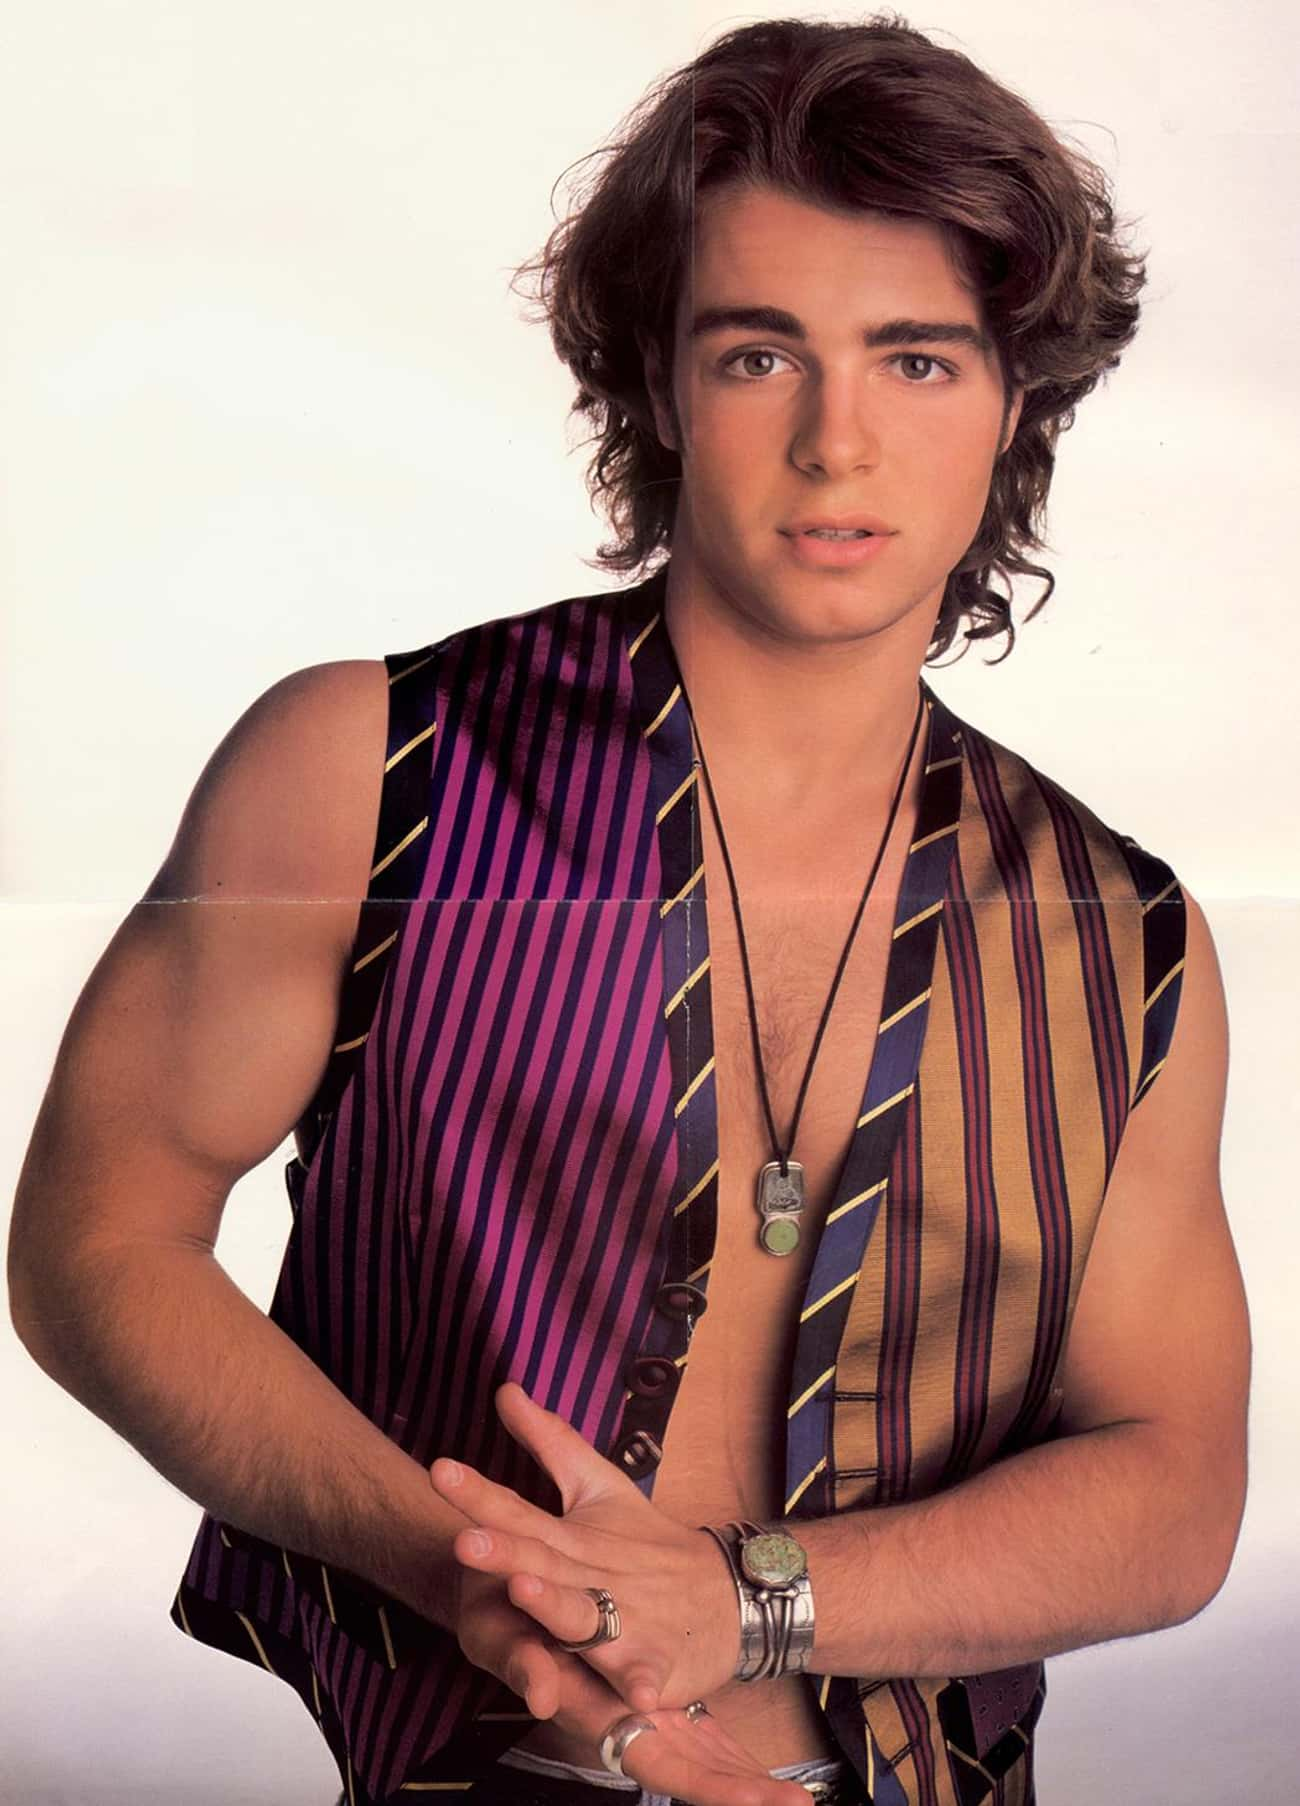 Joey Lawrence in Satin Alladin is listed (or ranked) 3 on the list Hot Joey Lawrence Photos